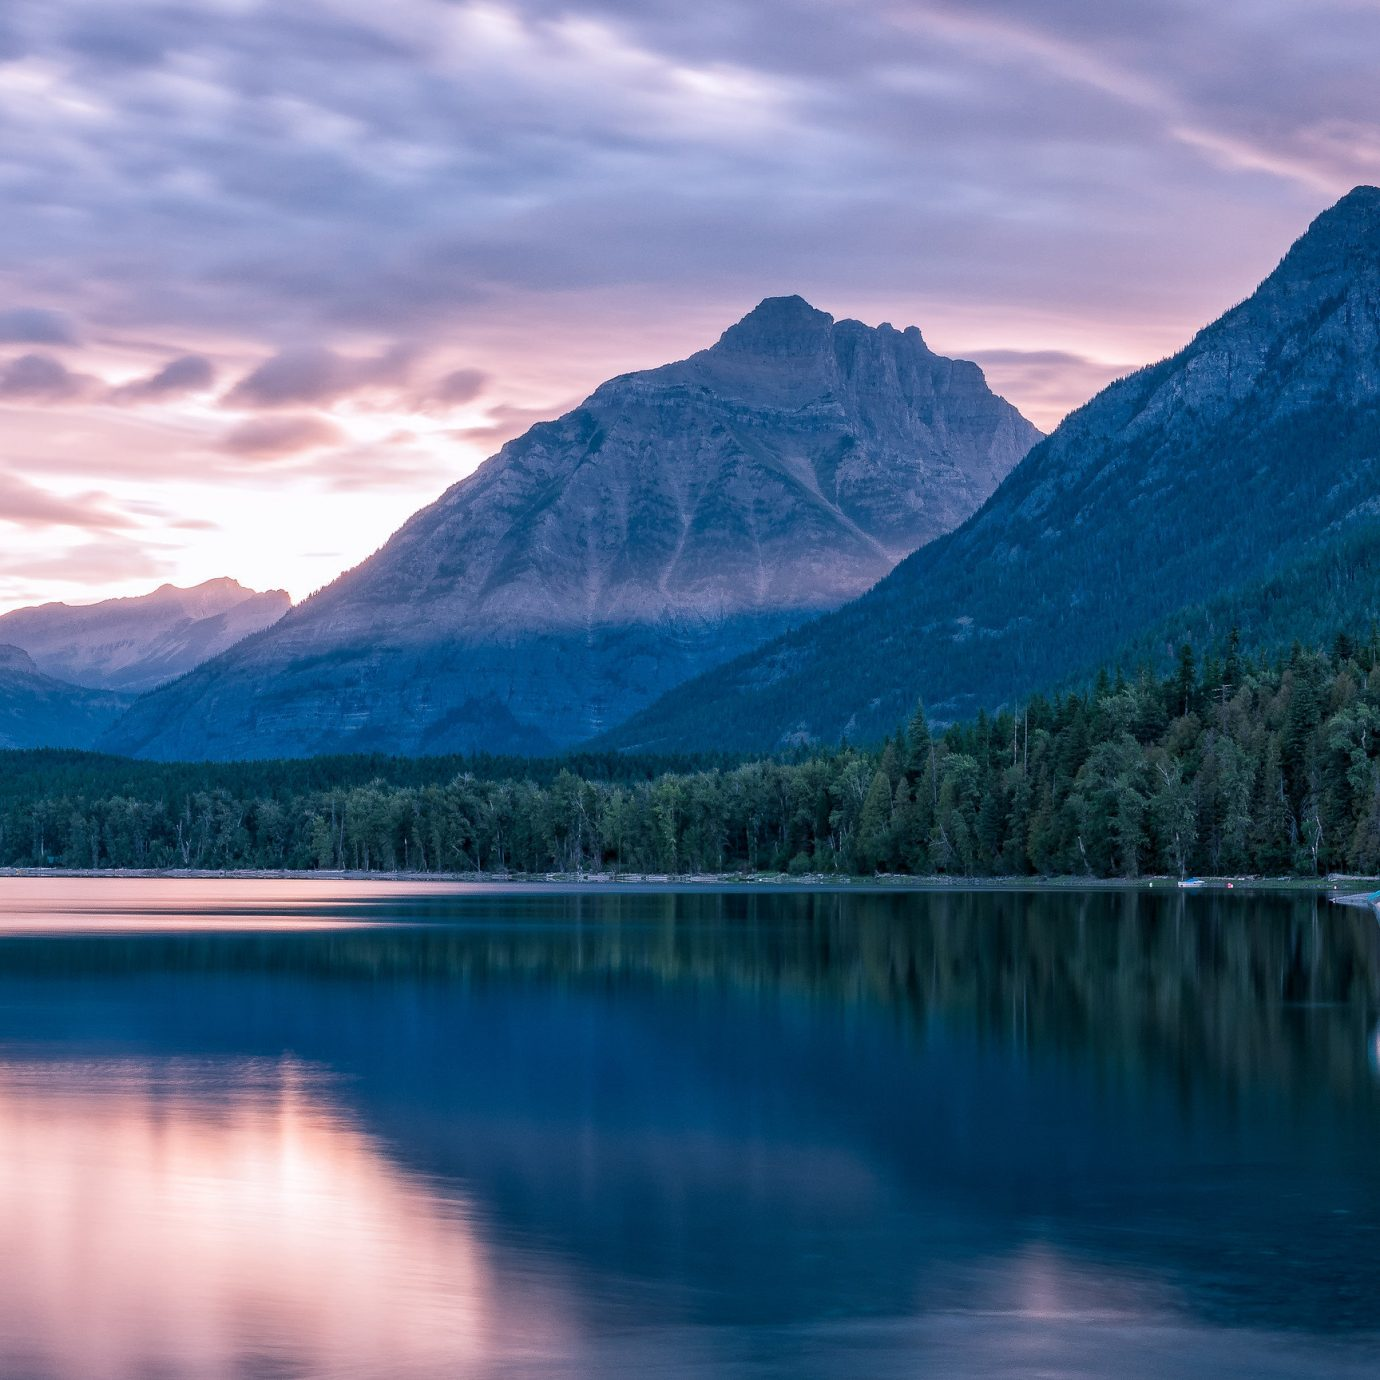 Lakes + Rivers Outdoors + Adventure Trip Ideas mountain water sky outdoor mountainous landforms Boat Nature reflection Lake landform wilderness body of water mountain range fjord cloud loch morning canyon landscape glacial landform alps reservoir dusk surrounded distance